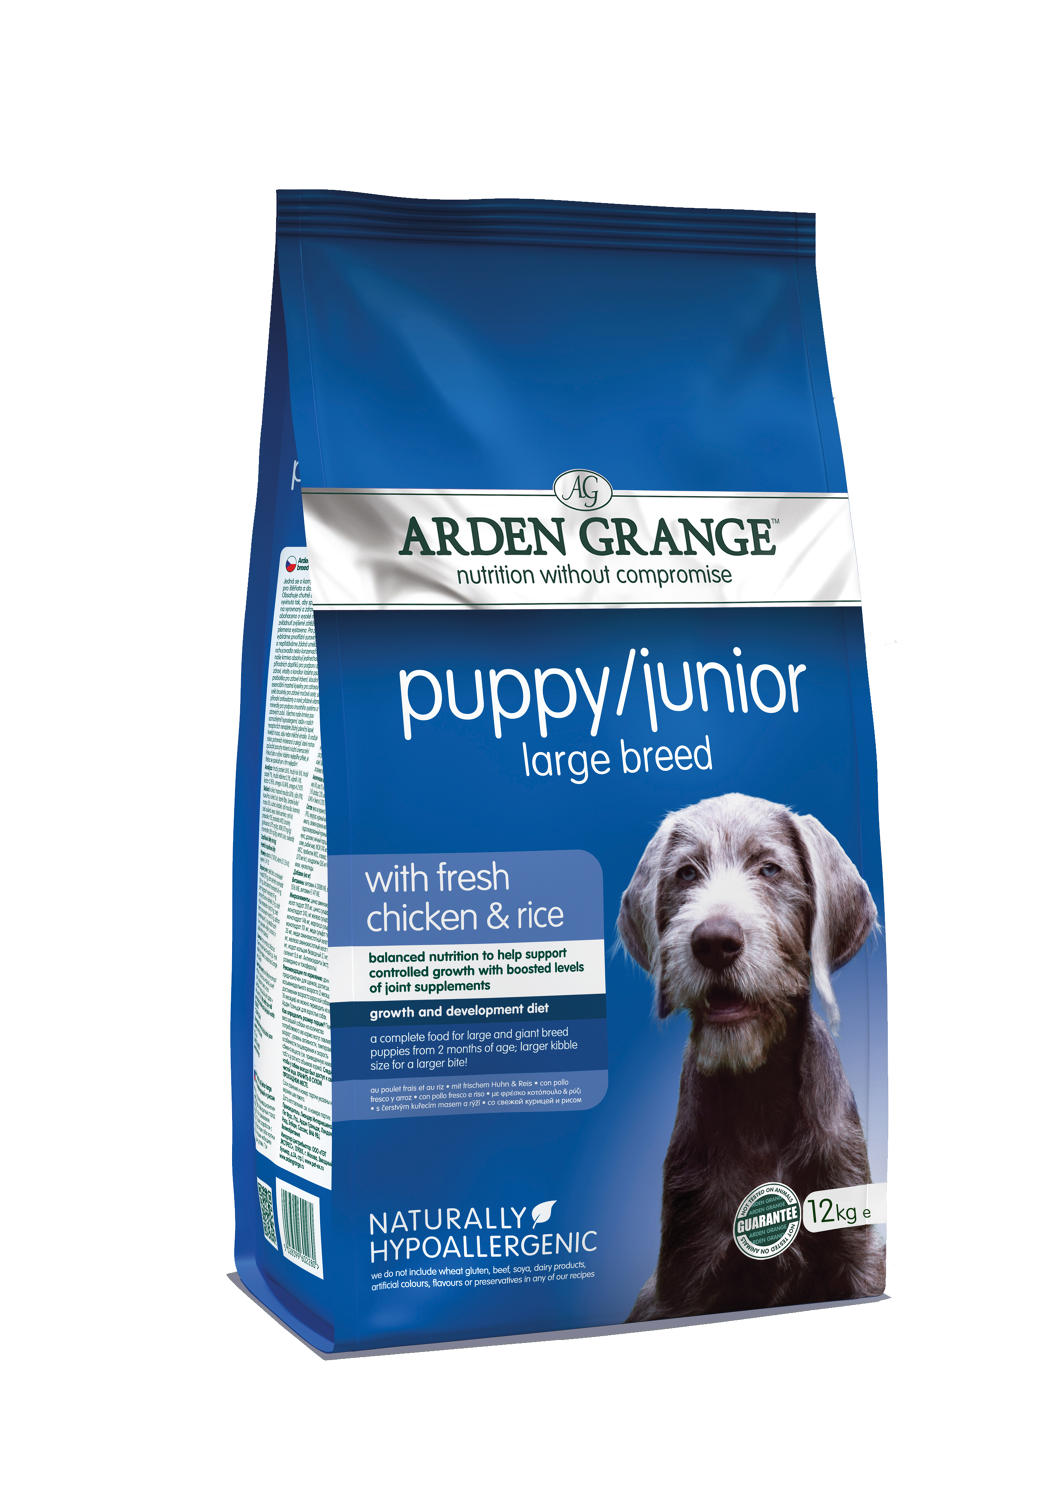 Arden Grange Puppy/ Junior Large Breed 12kg